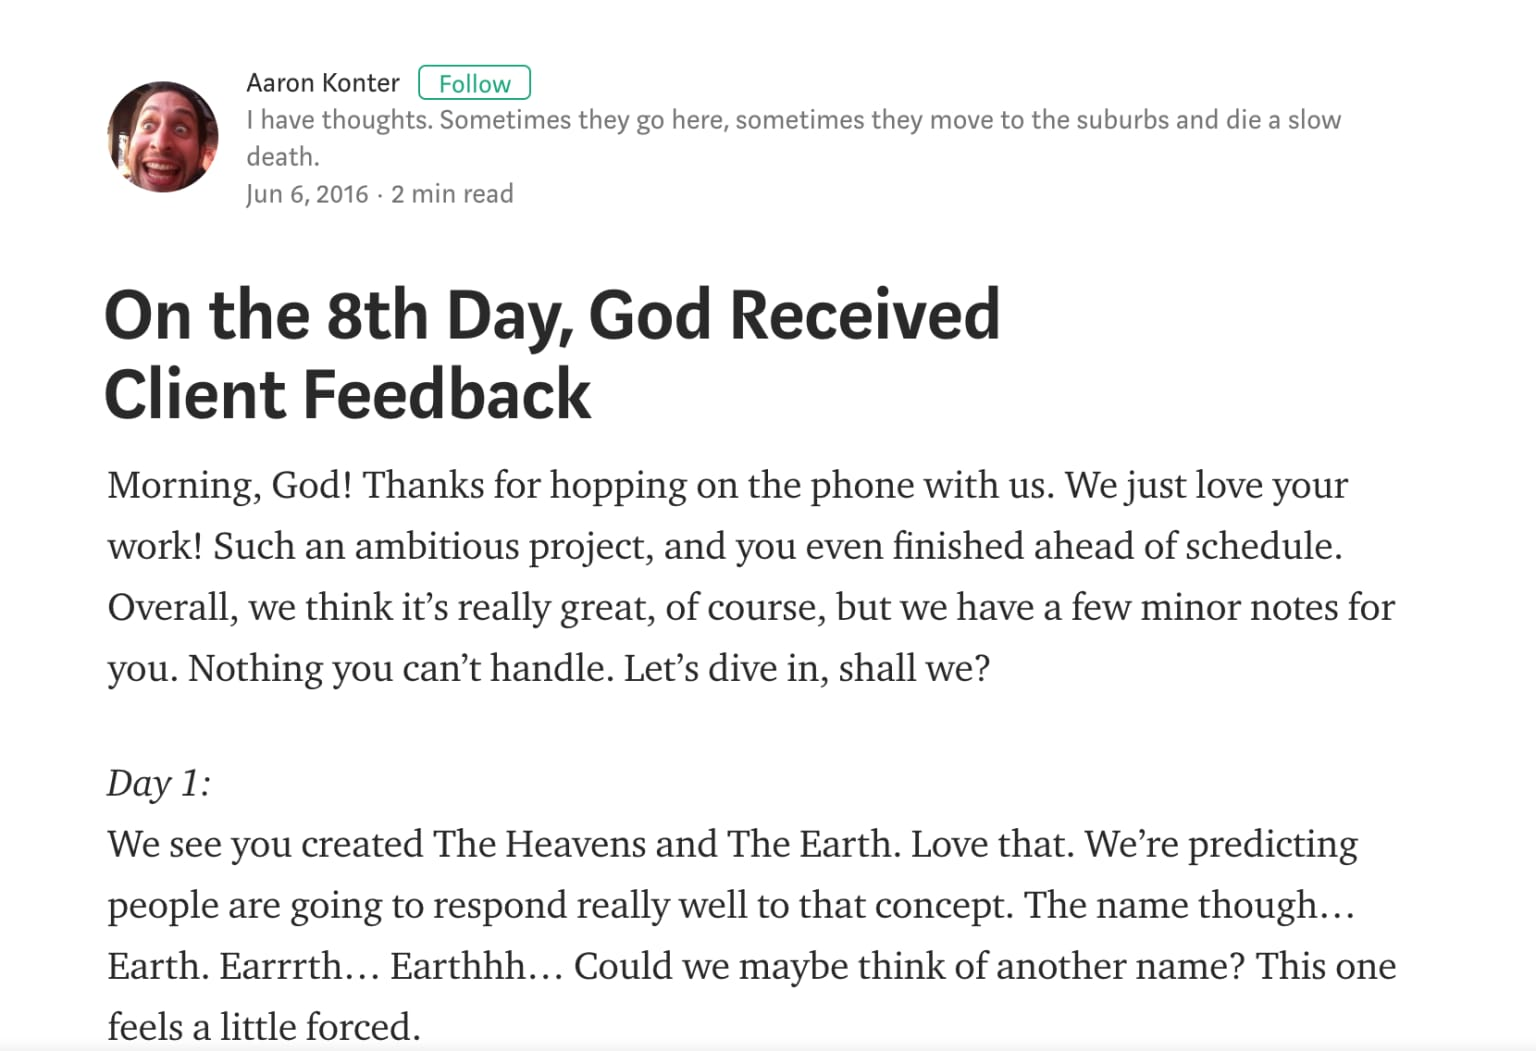 On The 8th Day, God Received Client Feedback